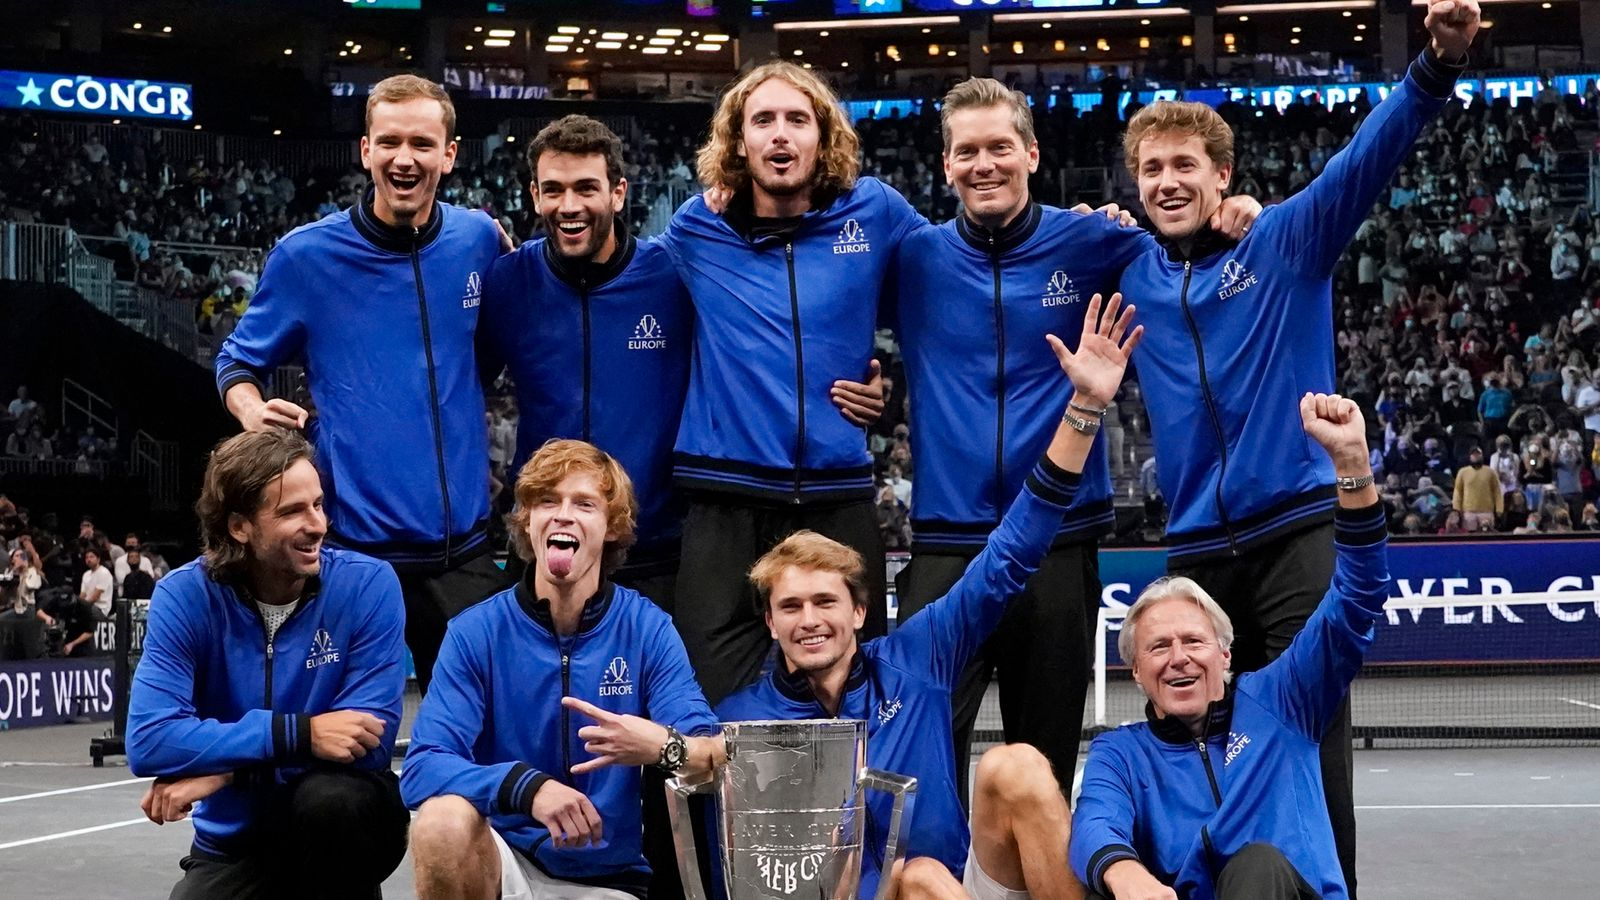 Team Europe win fourth consecutive Laver Cup with an insurmountable 14-1 success over Team World